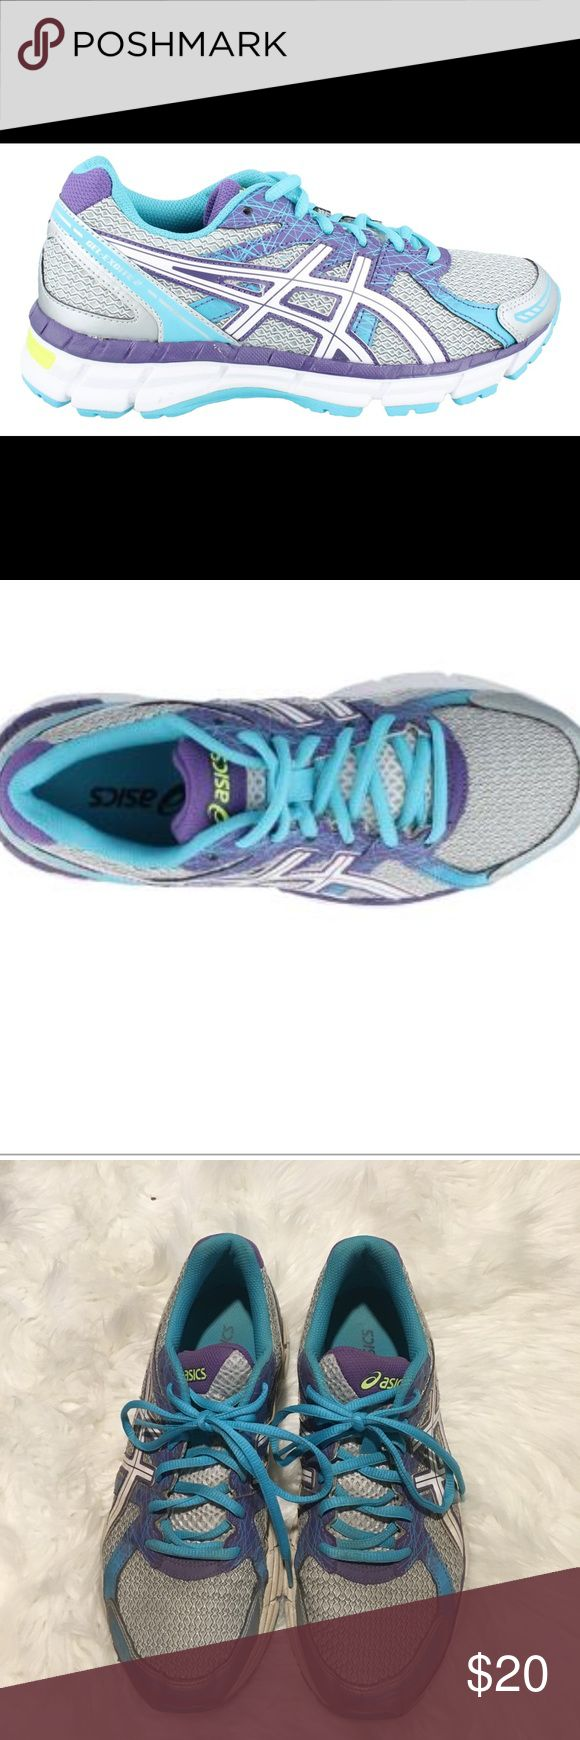 Women's Asics, Gel Excite 2 Running Sneaker US 9 Women's Asics, Gel Excite 2 Running Sneaker An exciting update for the low mileage runner who wants a cushioned ride and a great fit Breathable mesh and manmade upper Contains reflective materials to help enhance visibility during low light situations Padded tongue and collar for added comfort Fabric lining Removable cushioned footbed to help accommodate orthotics Rearfoot GEL cushioning system helps absorb shock Rubber outsole Sole Material…